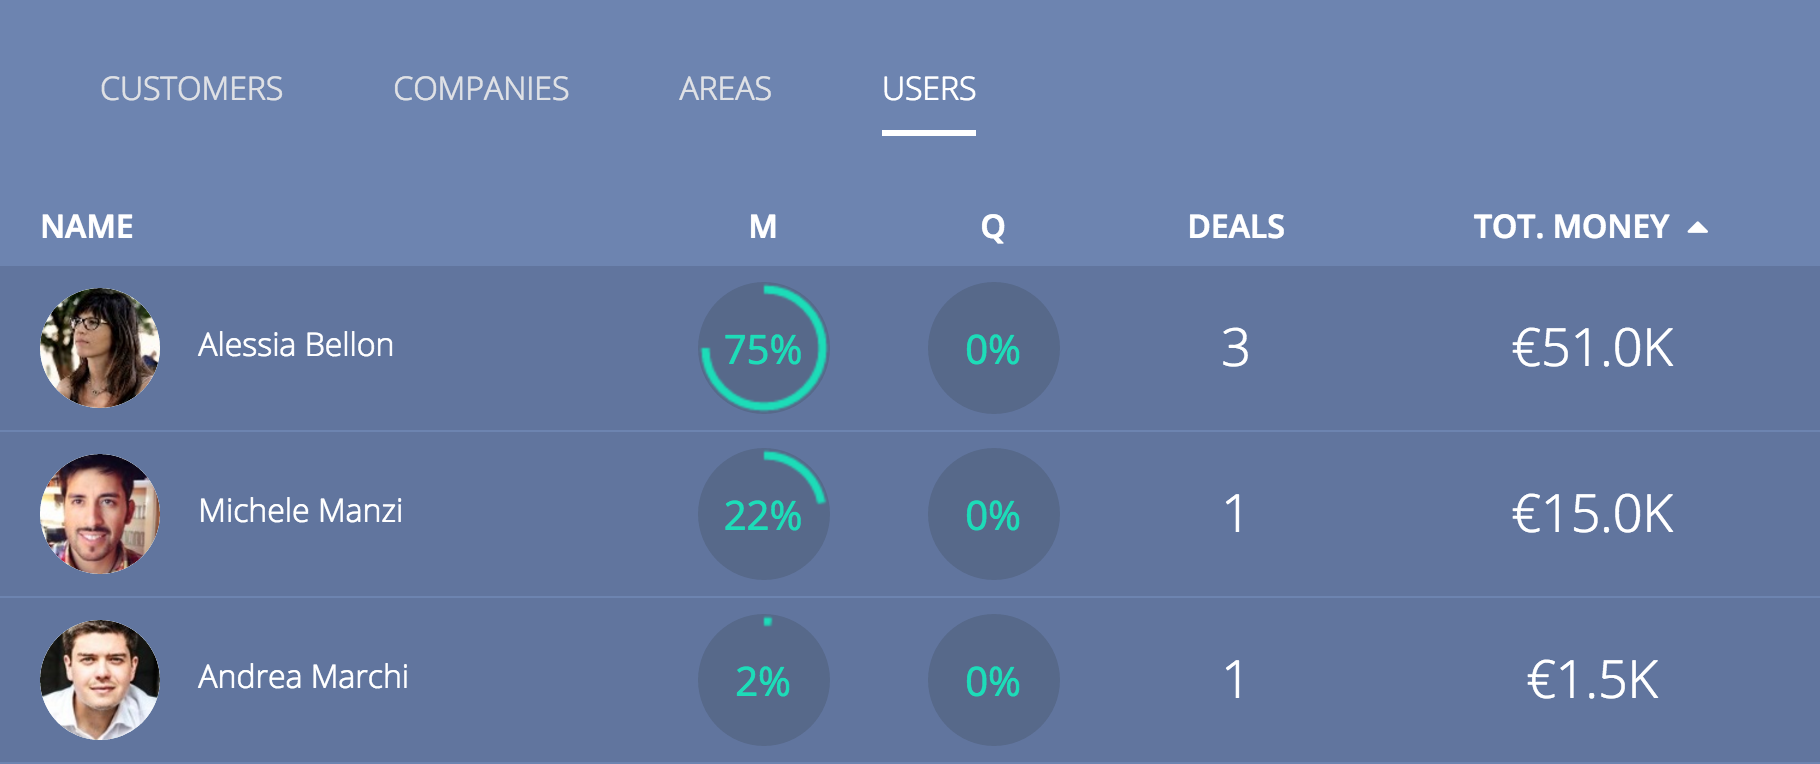 Sales by users Report